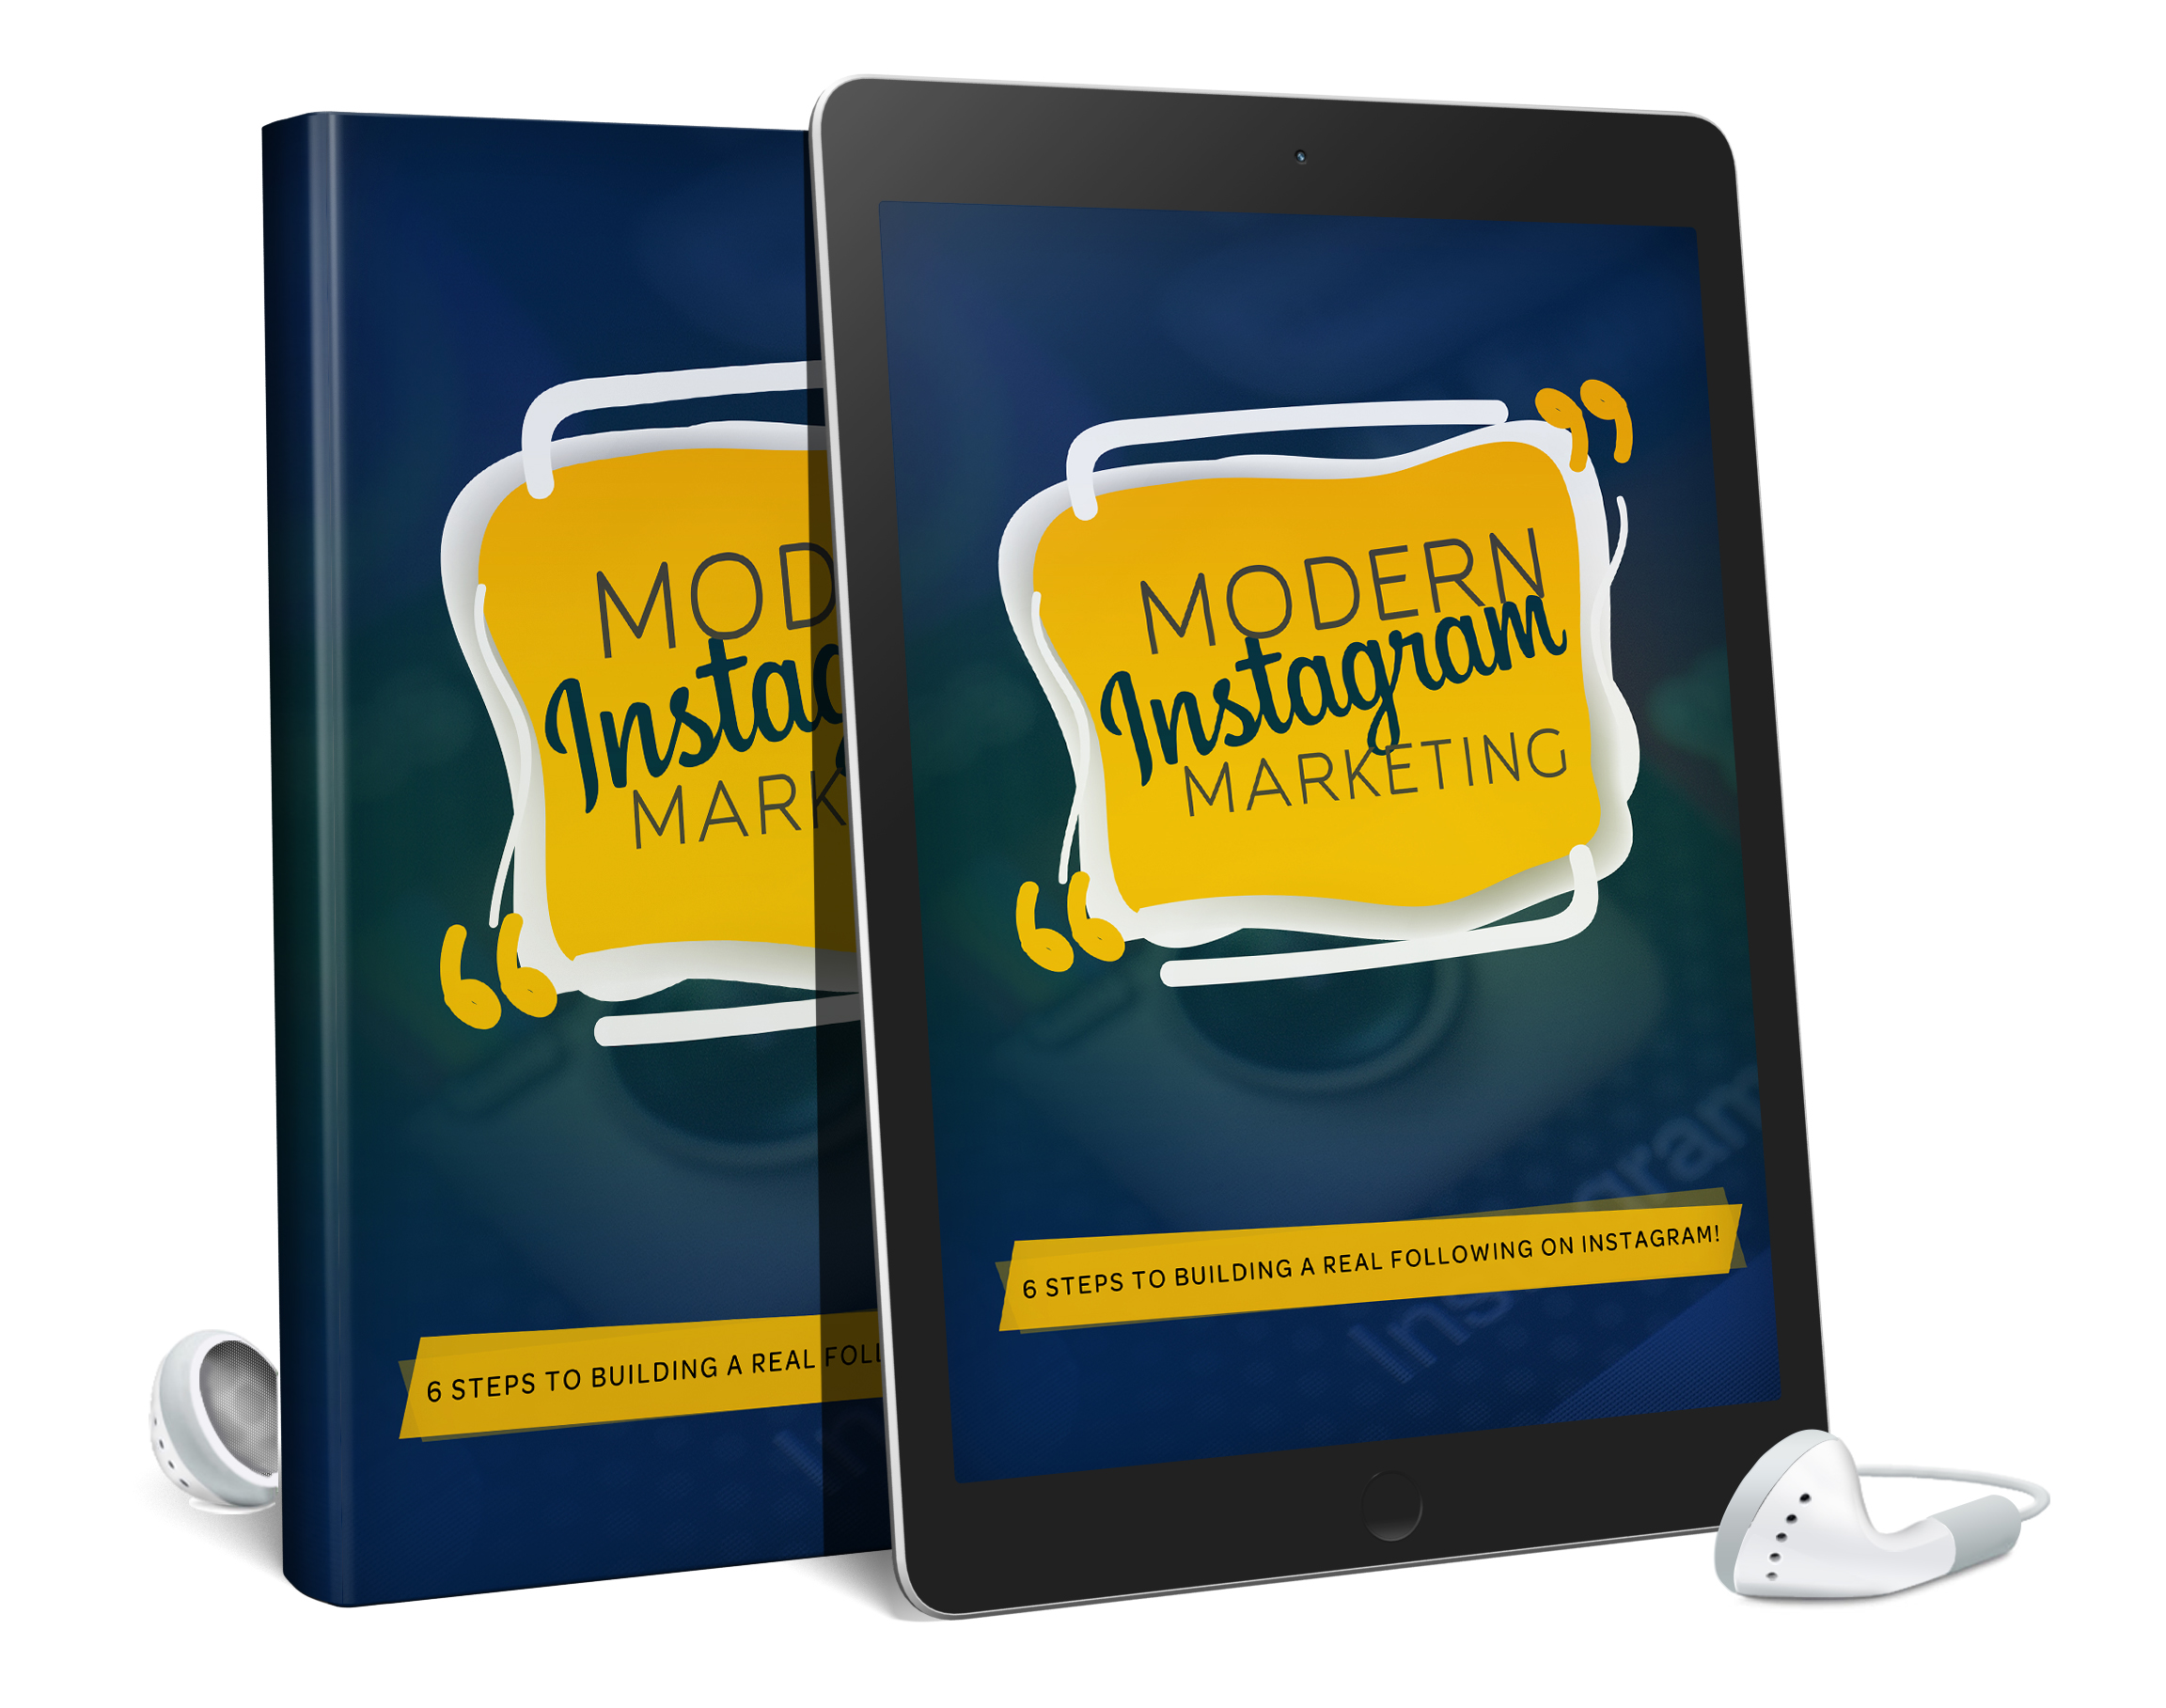 Modern Instagram Marketing AudioBook and Ebook